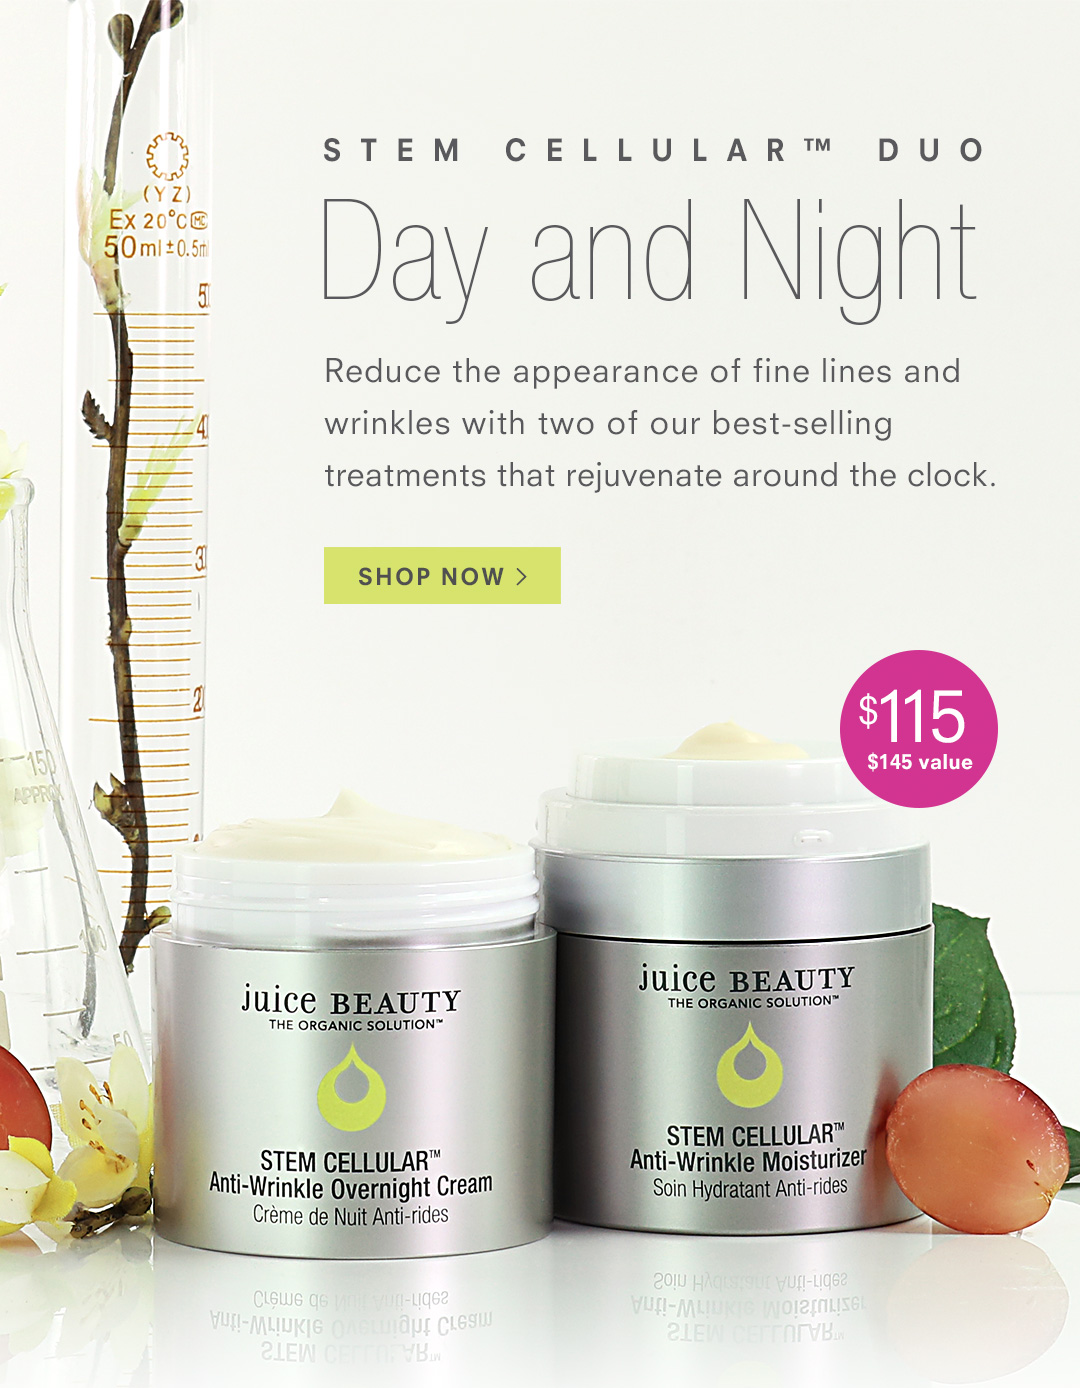 STEM CELLULAR Day and Night Duo